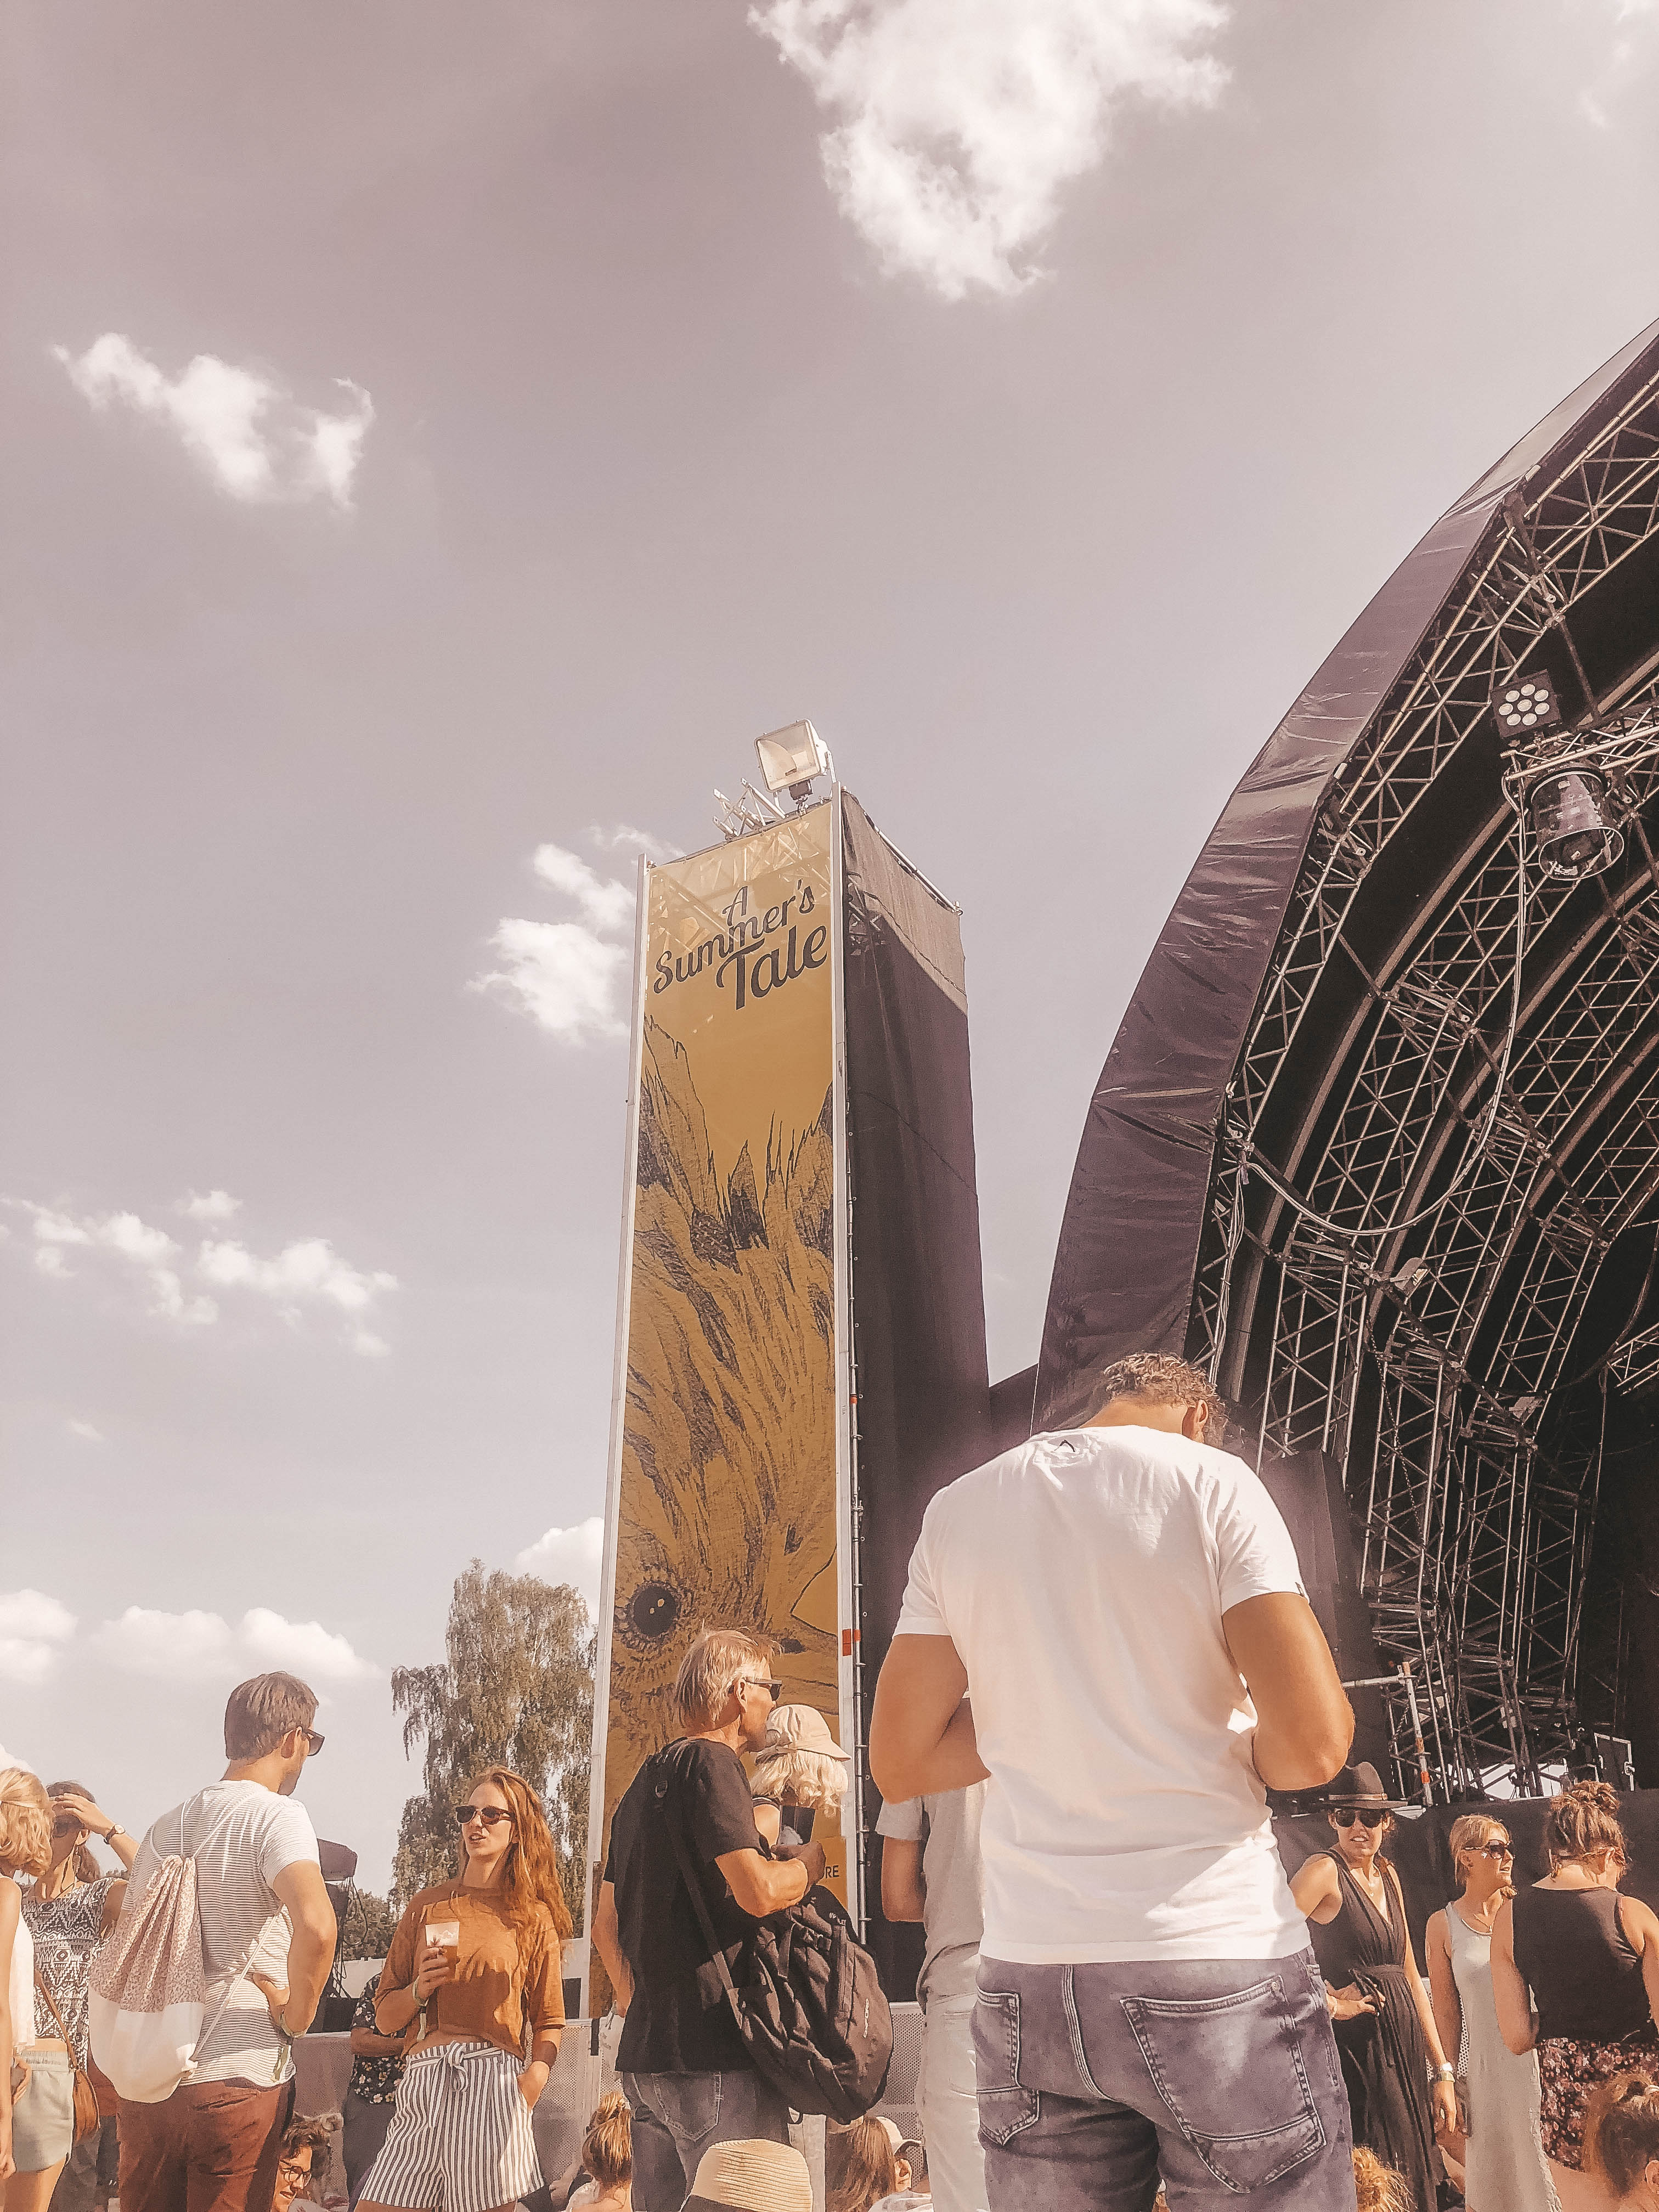 a summers tale festival mainstage